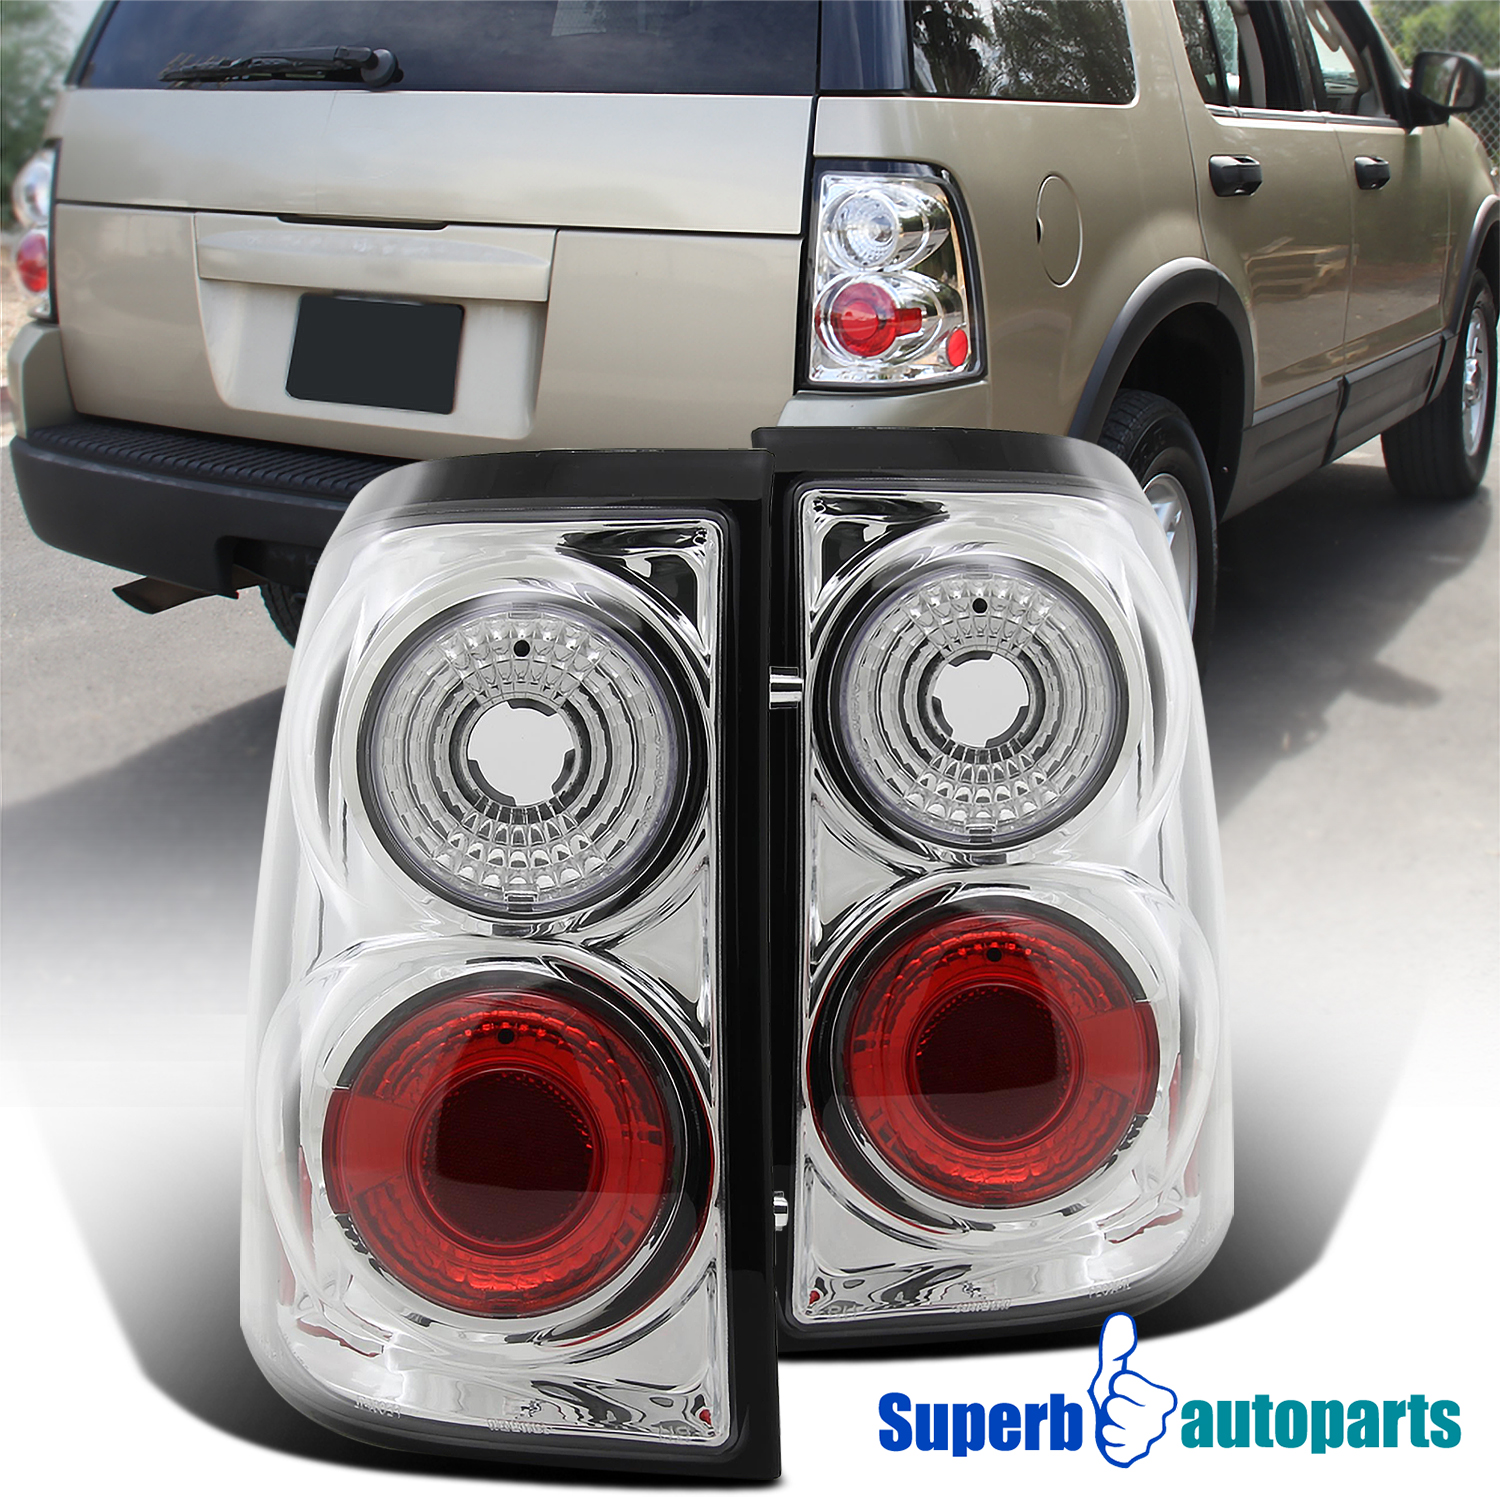 Details About For 2002 2005 Ford Explorer Replacement Tail Brake Lights